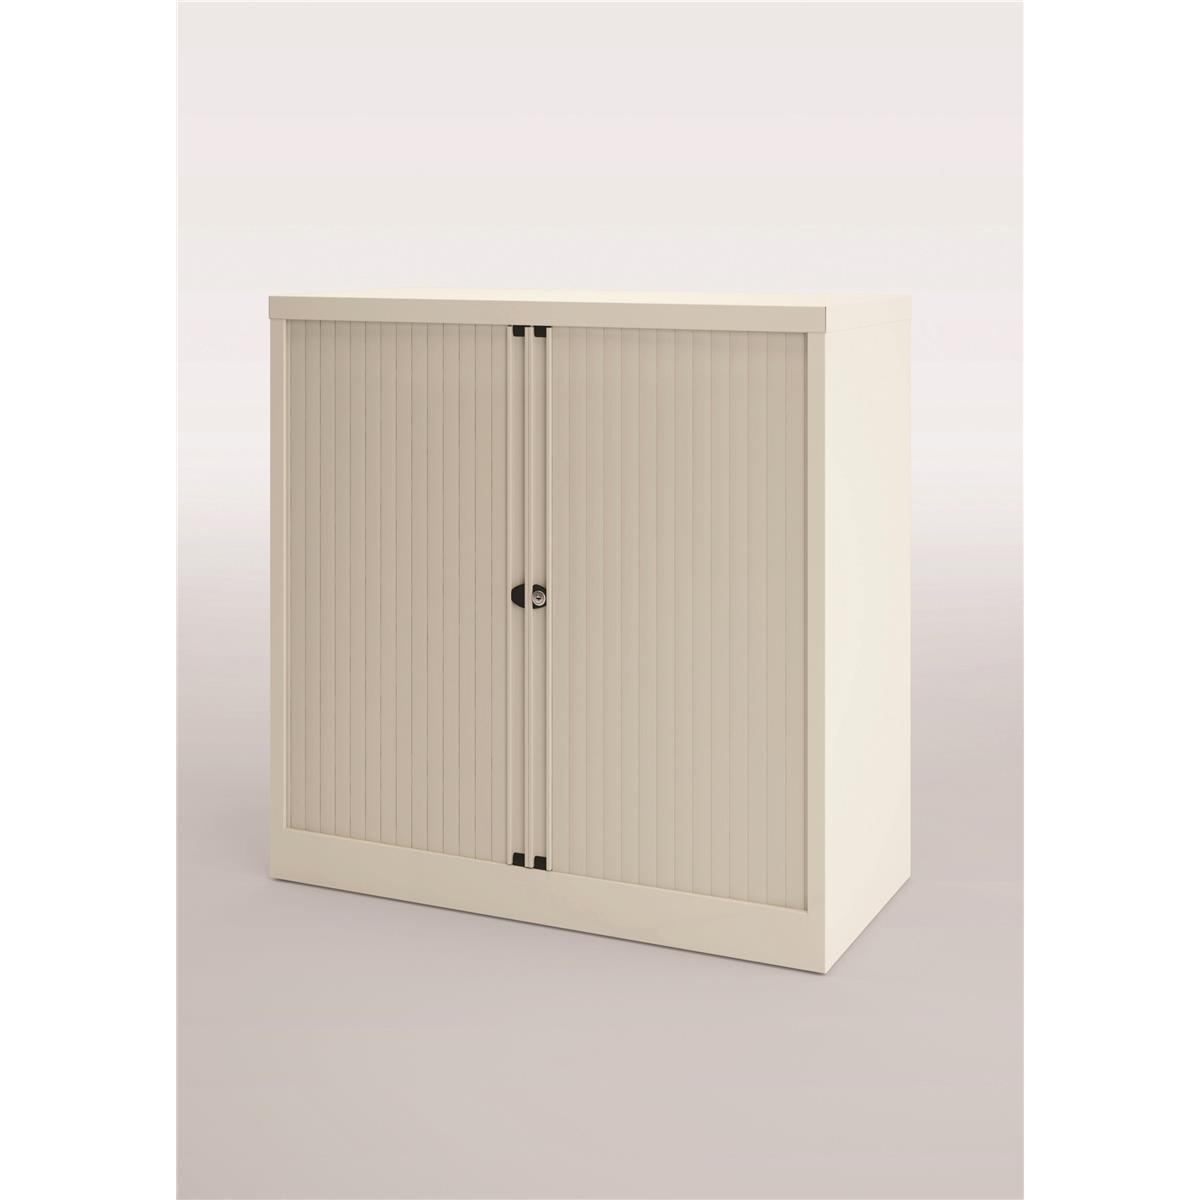 Trexus by Bisley Side Opening Tambour Door Cupboard 1000x470x1000-1015mm White/White Ref YETB1010.EW-ab9